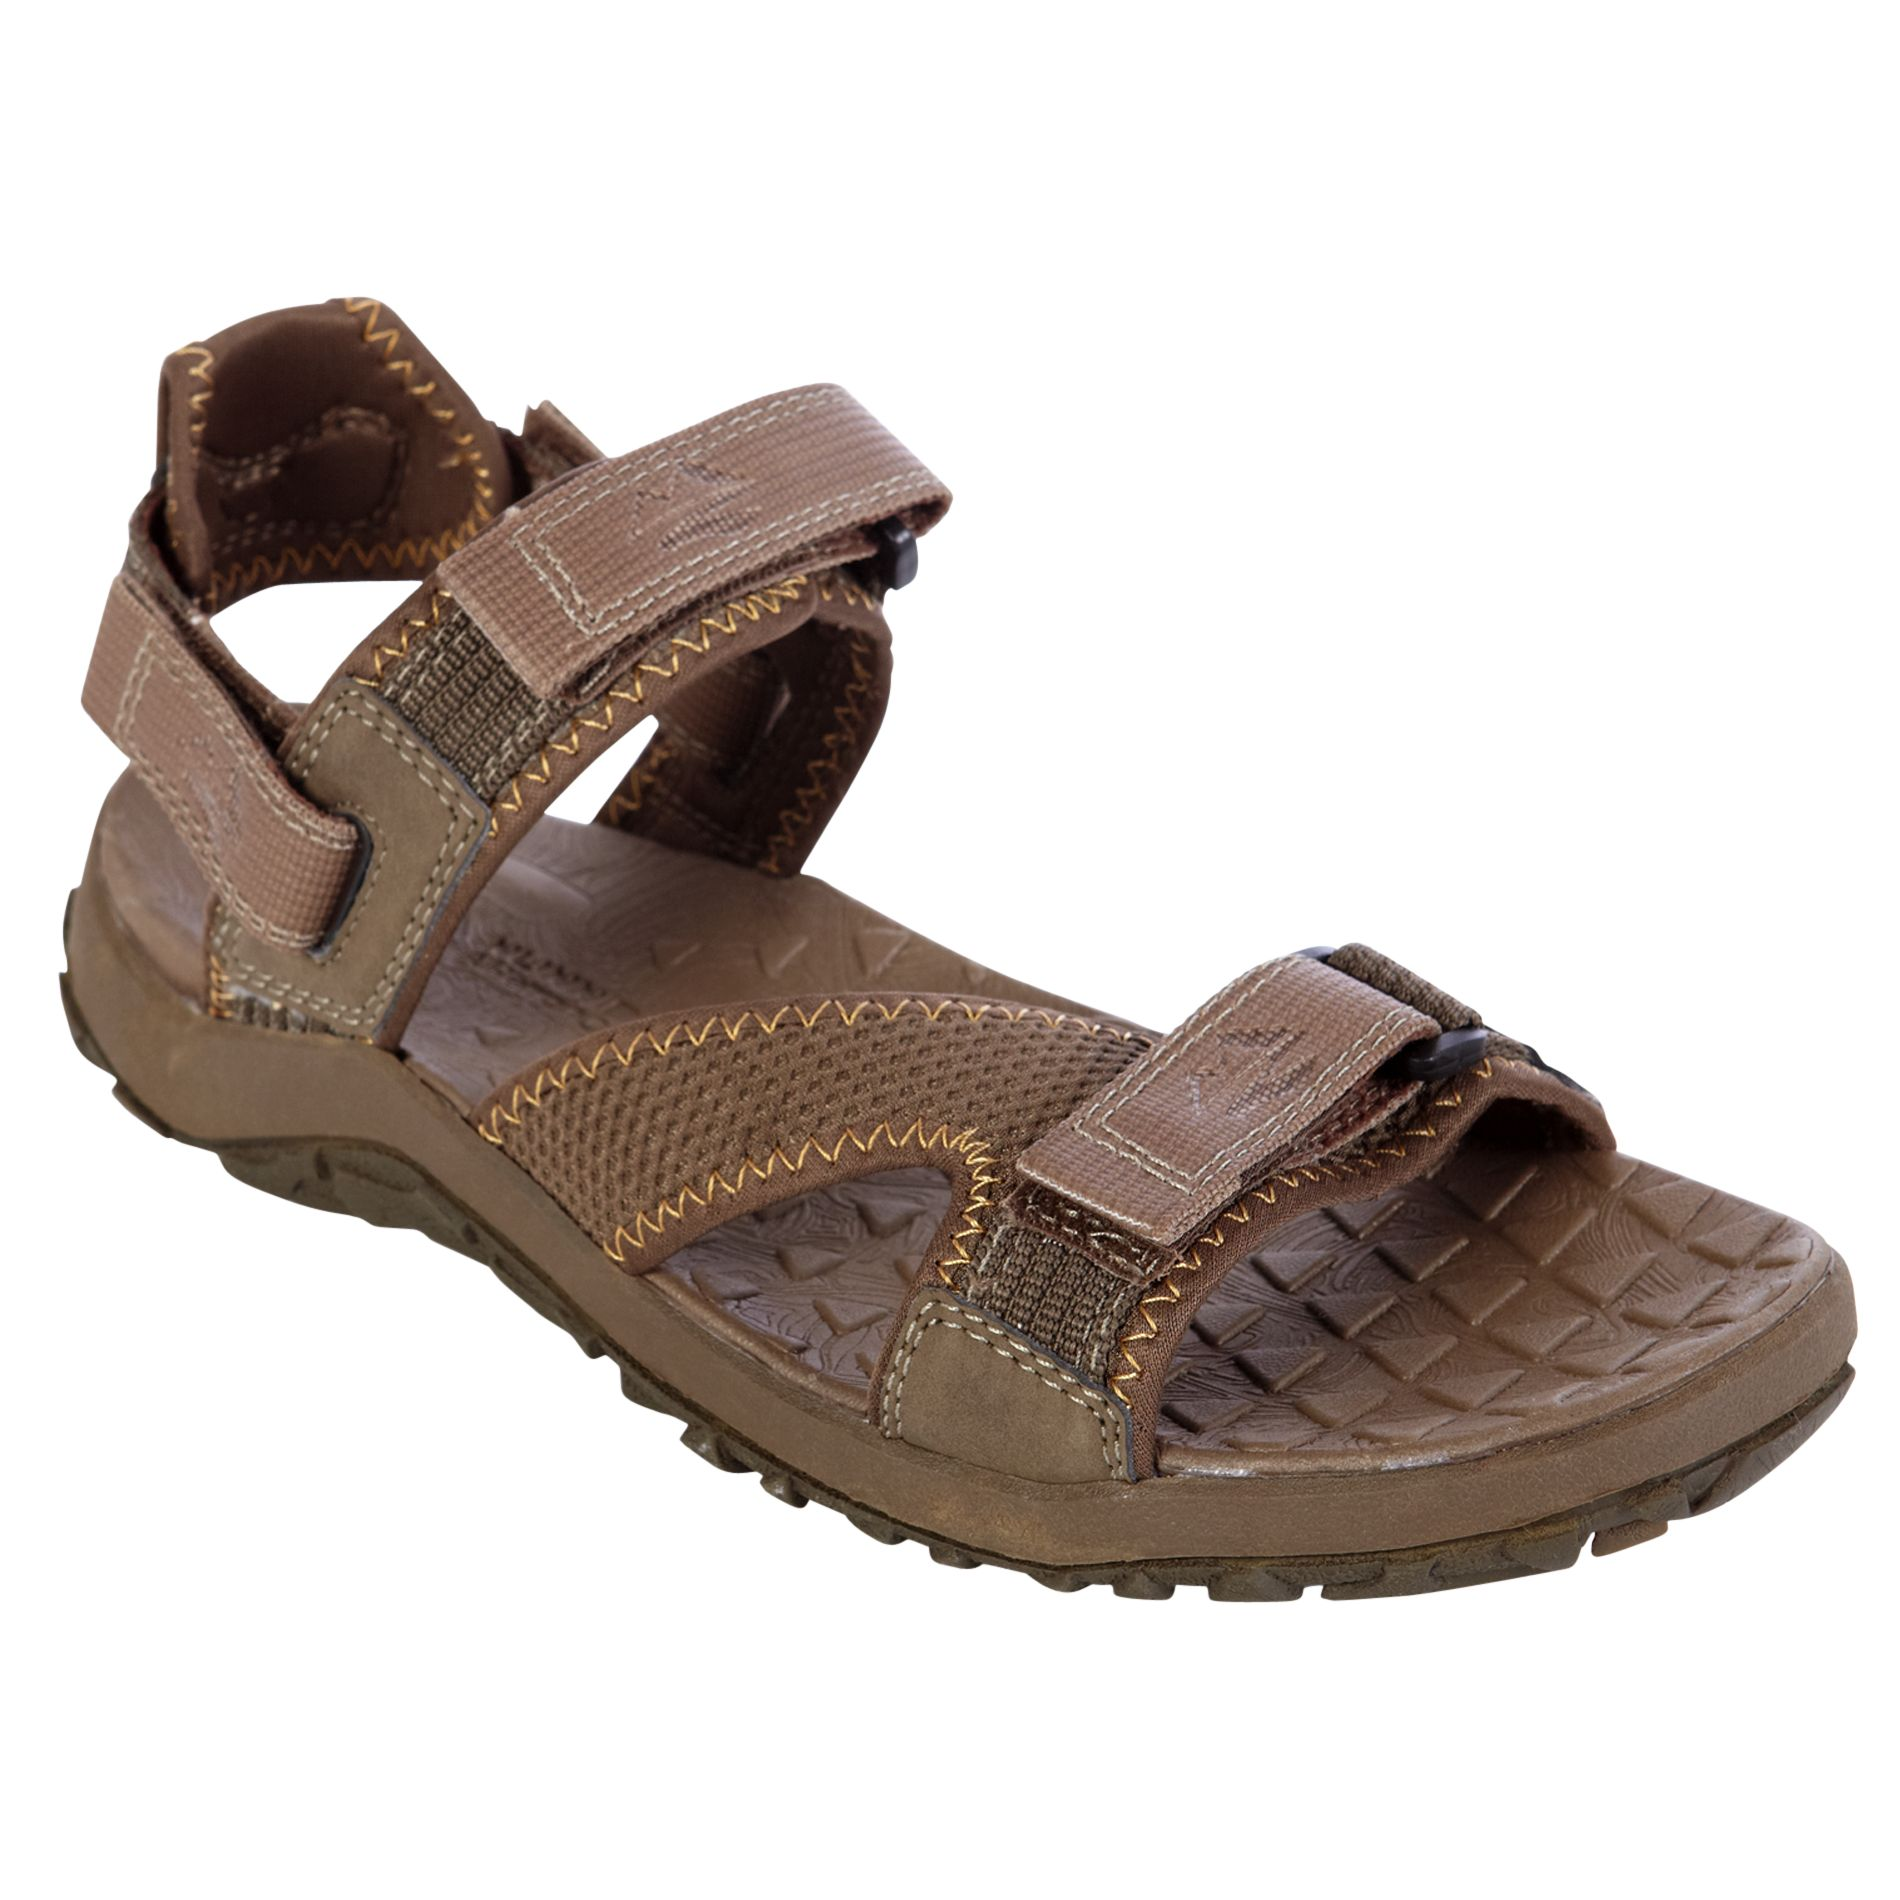 Nunn Bush All Terrain Comfort  Men's